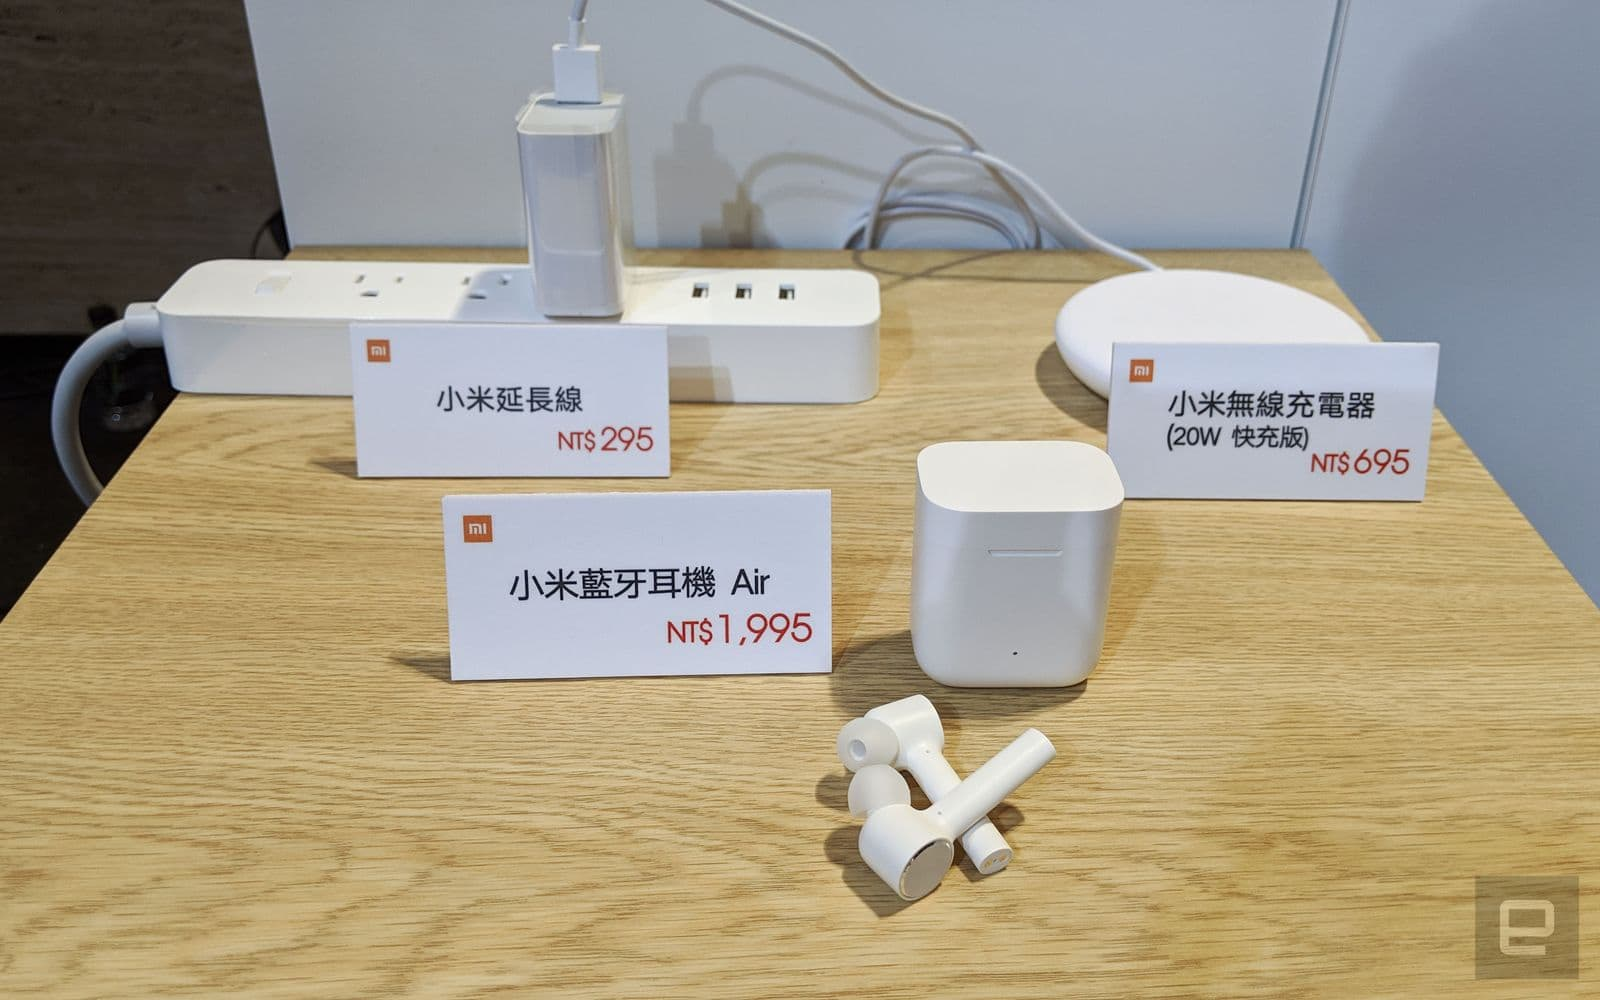 Mijia products